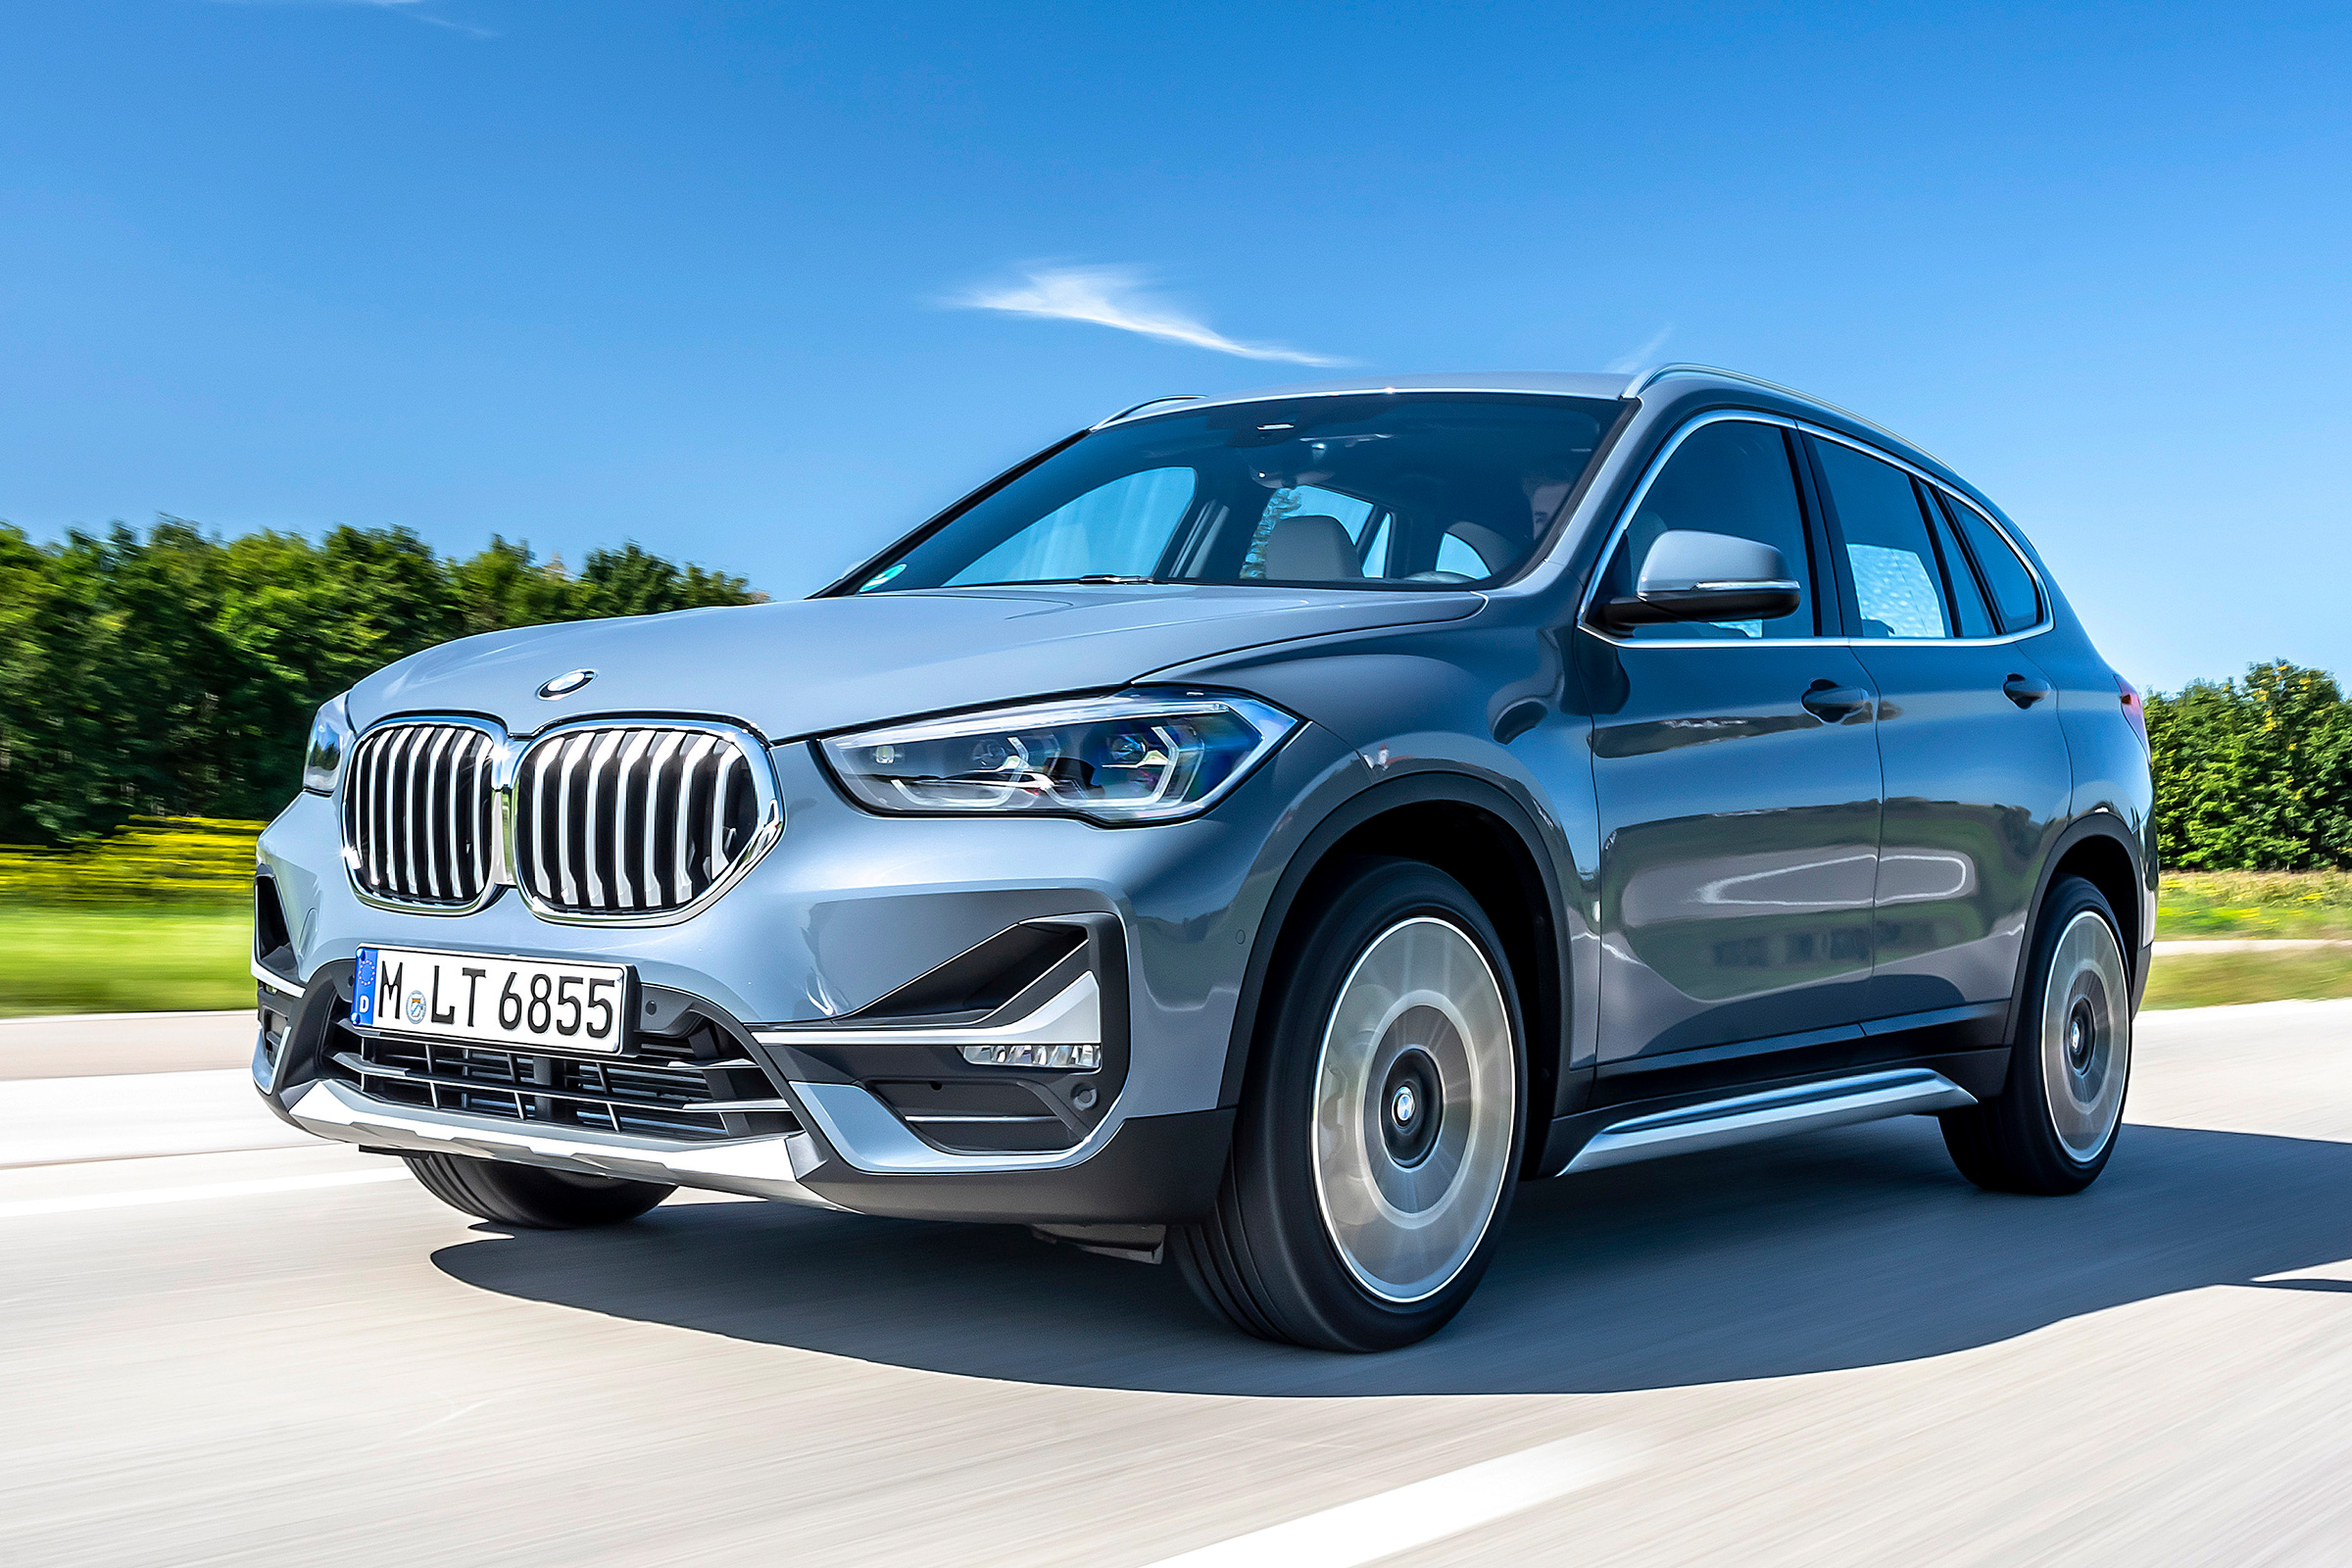 Bmw X1 Mpg Co2 Emissions Road Tax Insurance Groups Auto Express